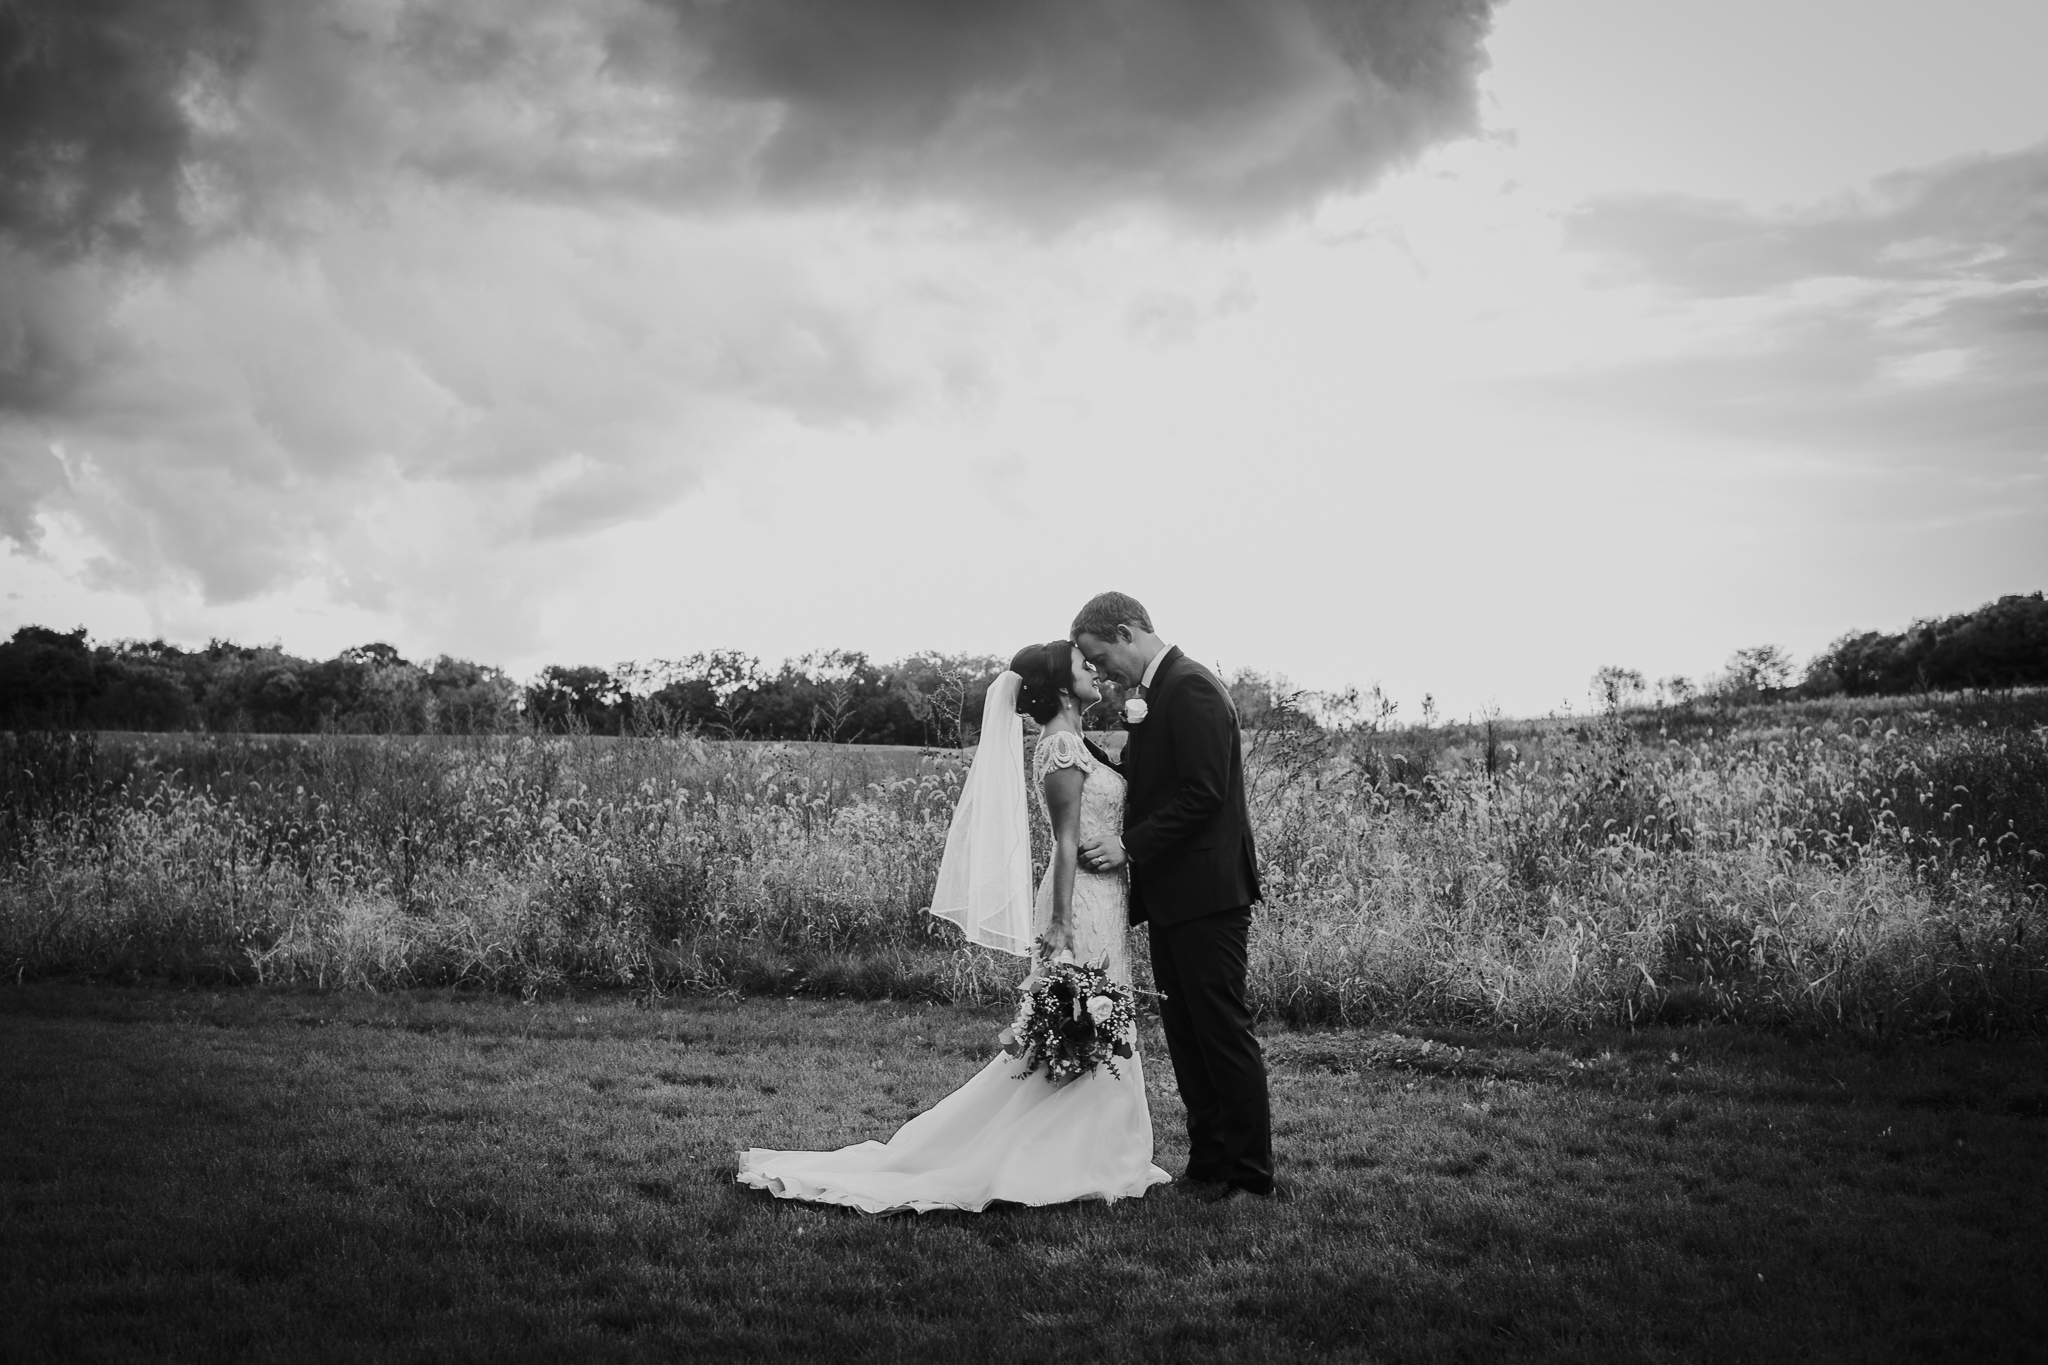 Bride & Groom embrace in field